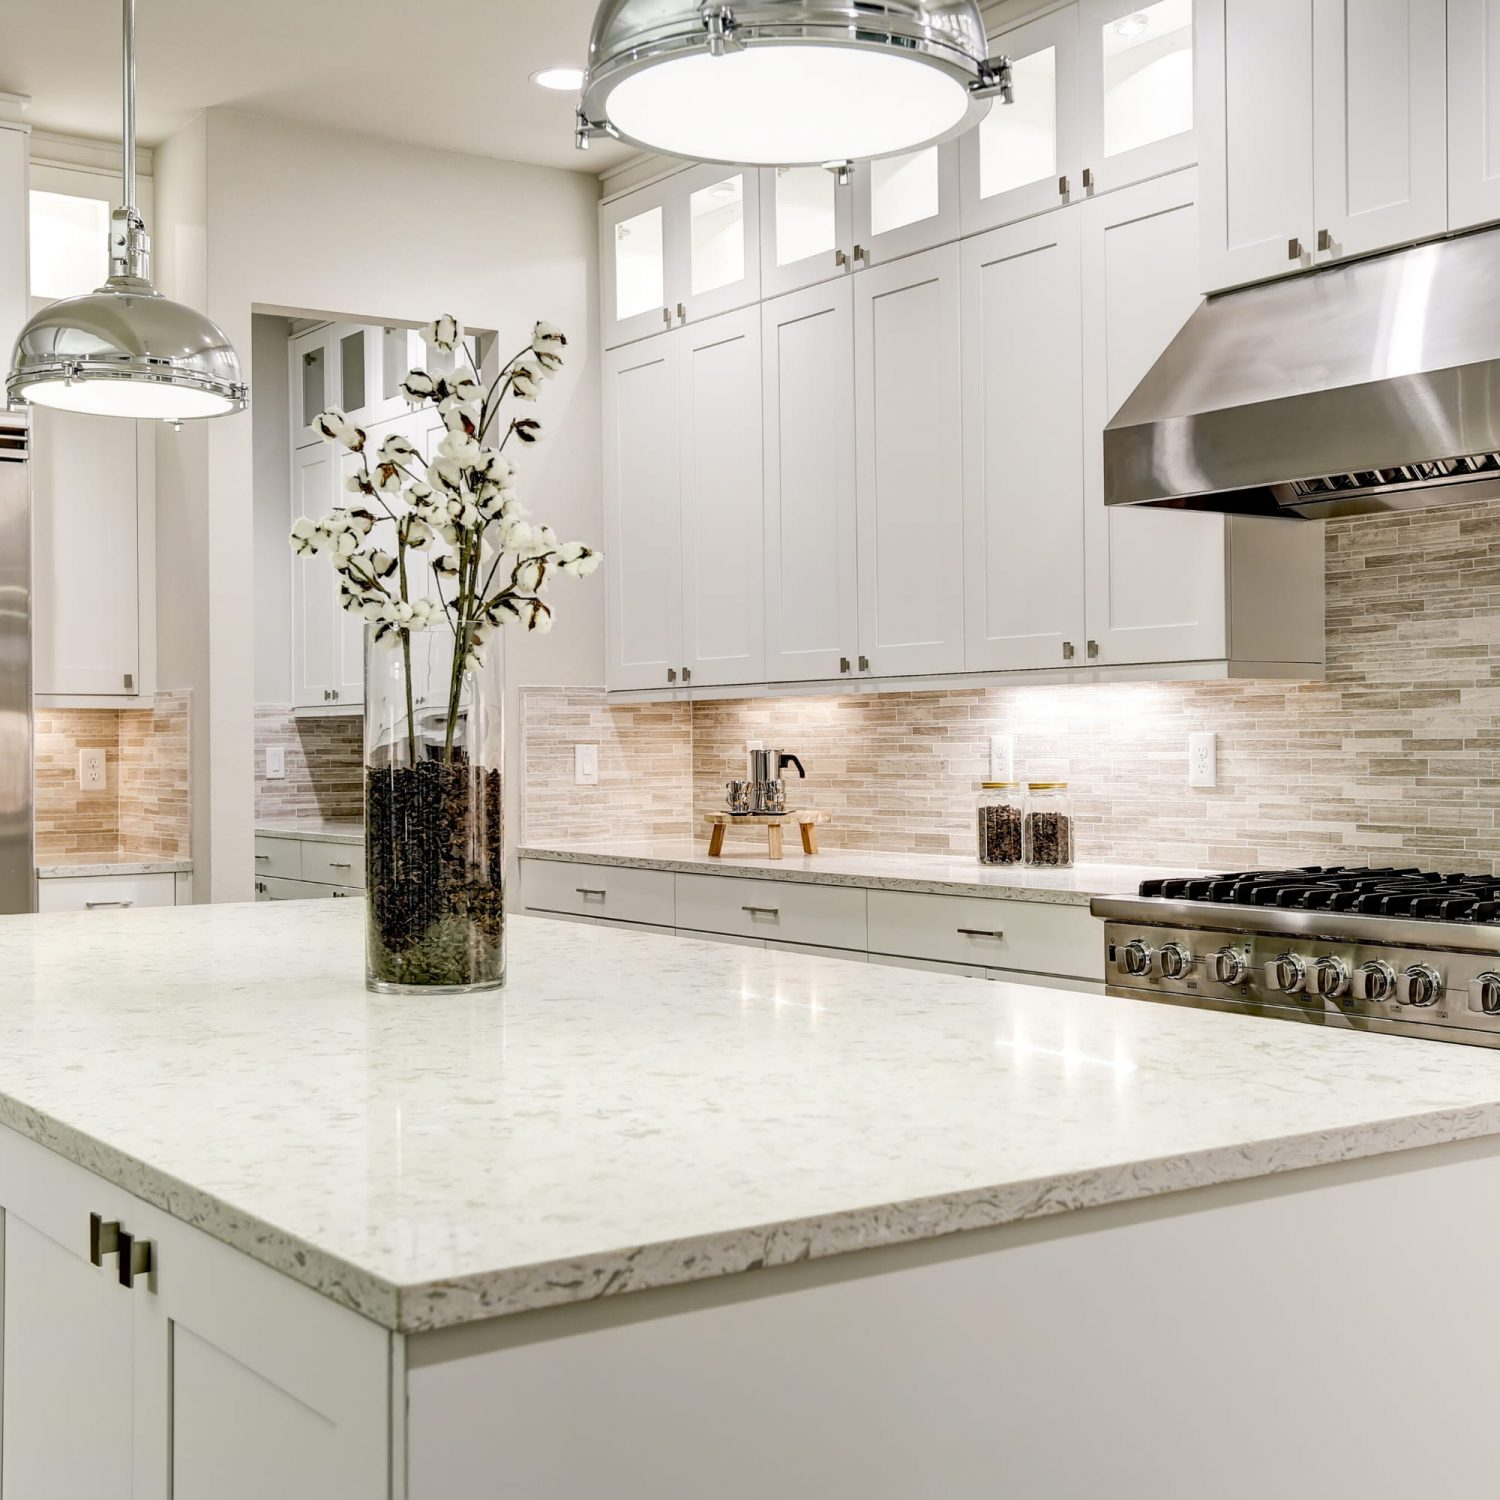 Countertops in well lit kitchen